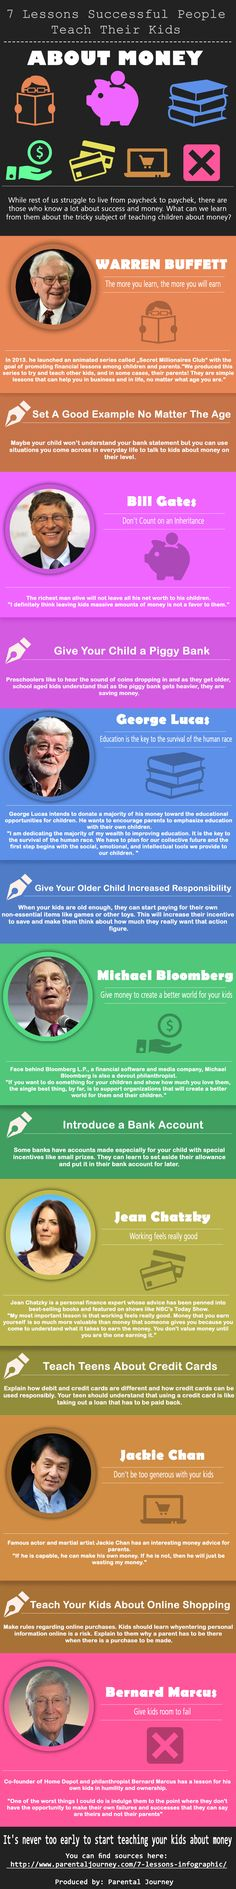 How Successful People Teach Their Kids About Money Infographic